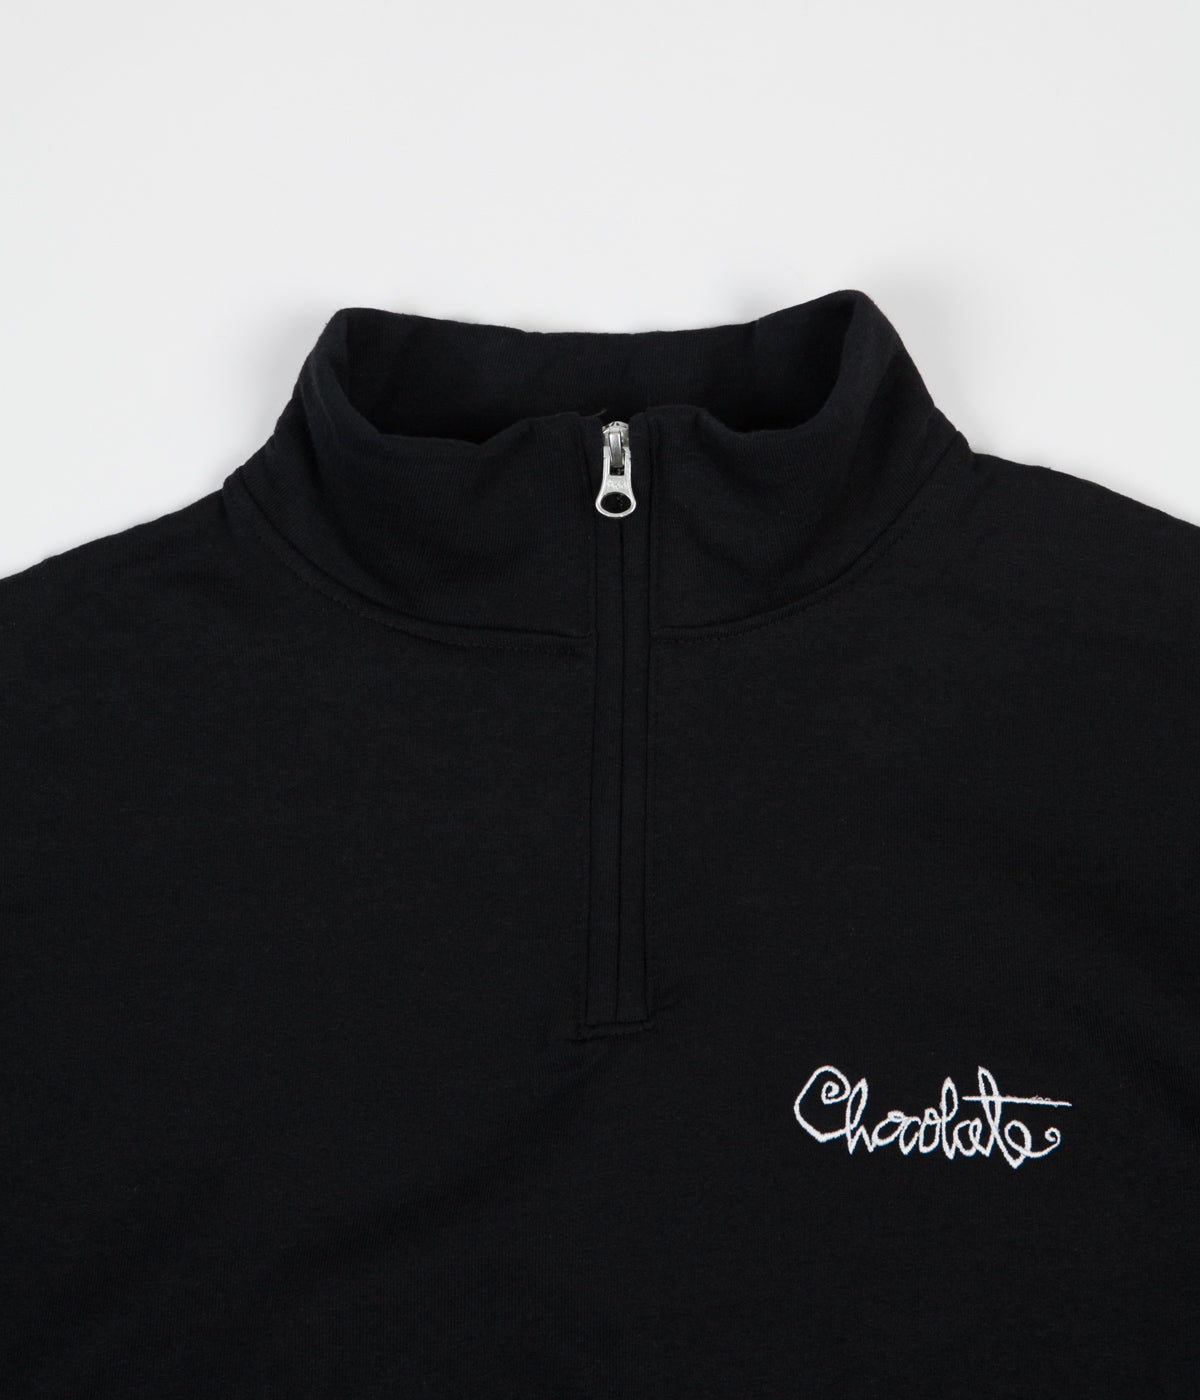 Chocolate Script 1/4 Zip Fleece Sweatshirt - Black